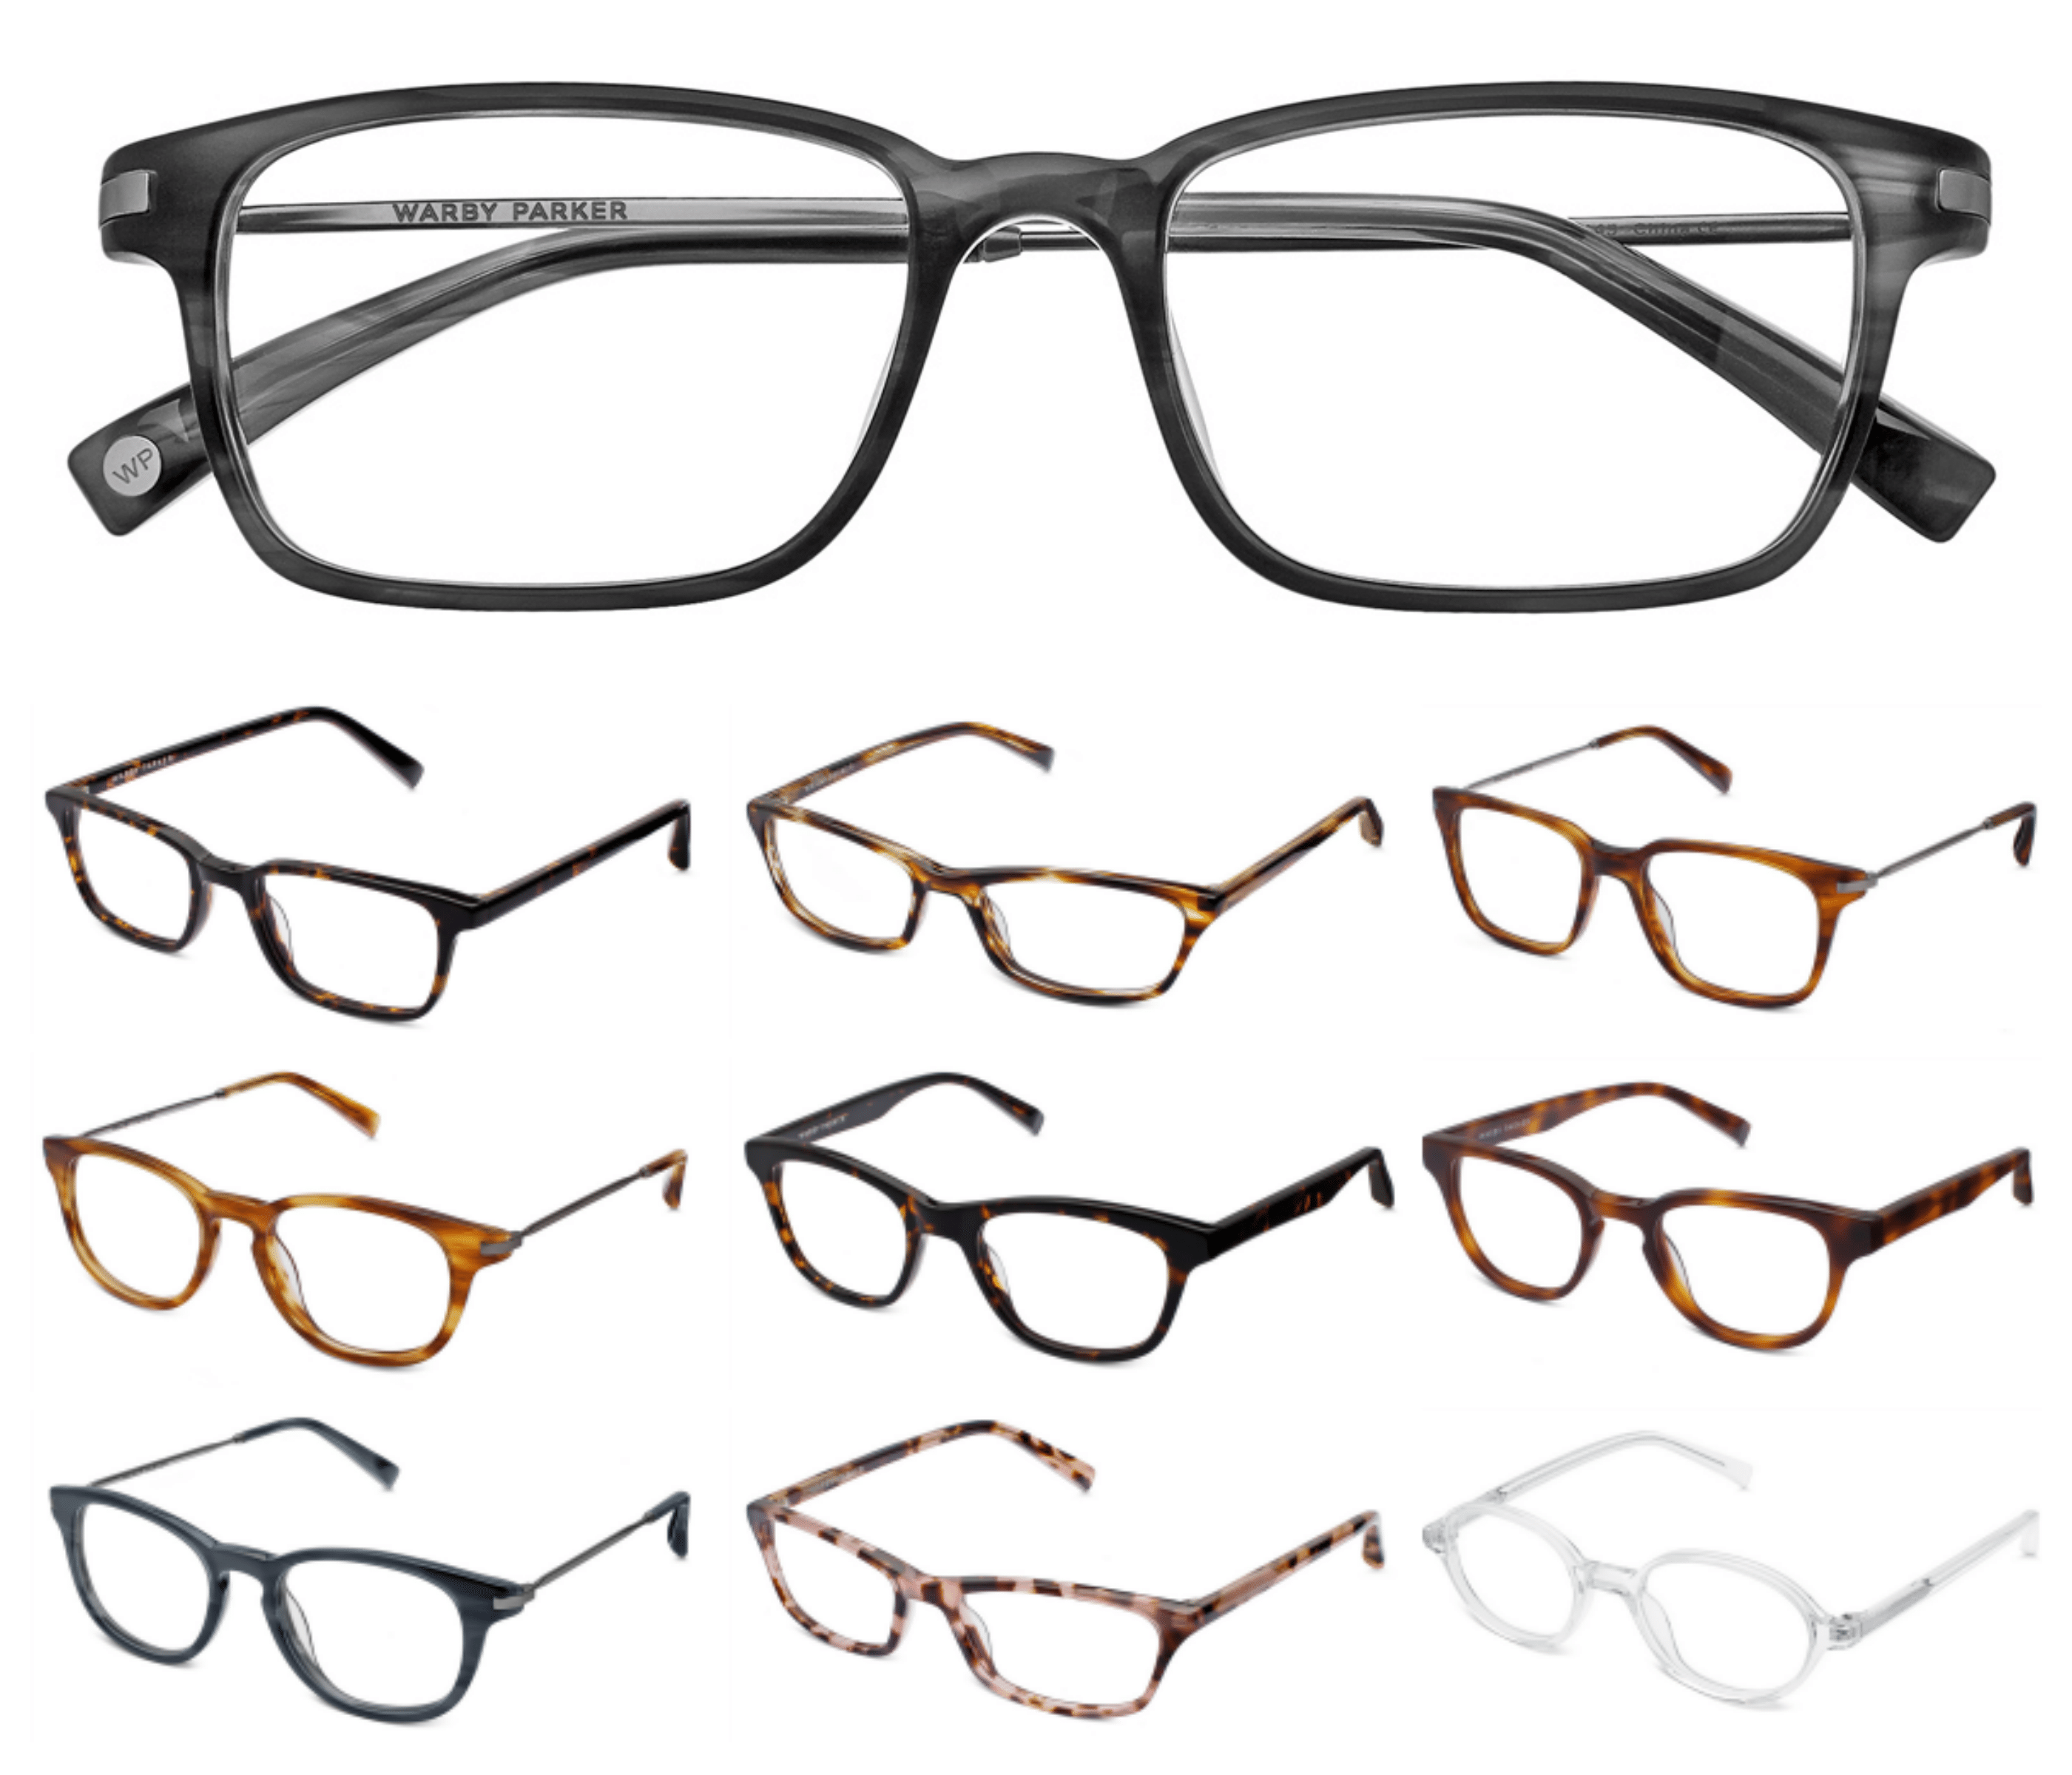 give a pair #warbyparker #fallfashion #opticalfashion